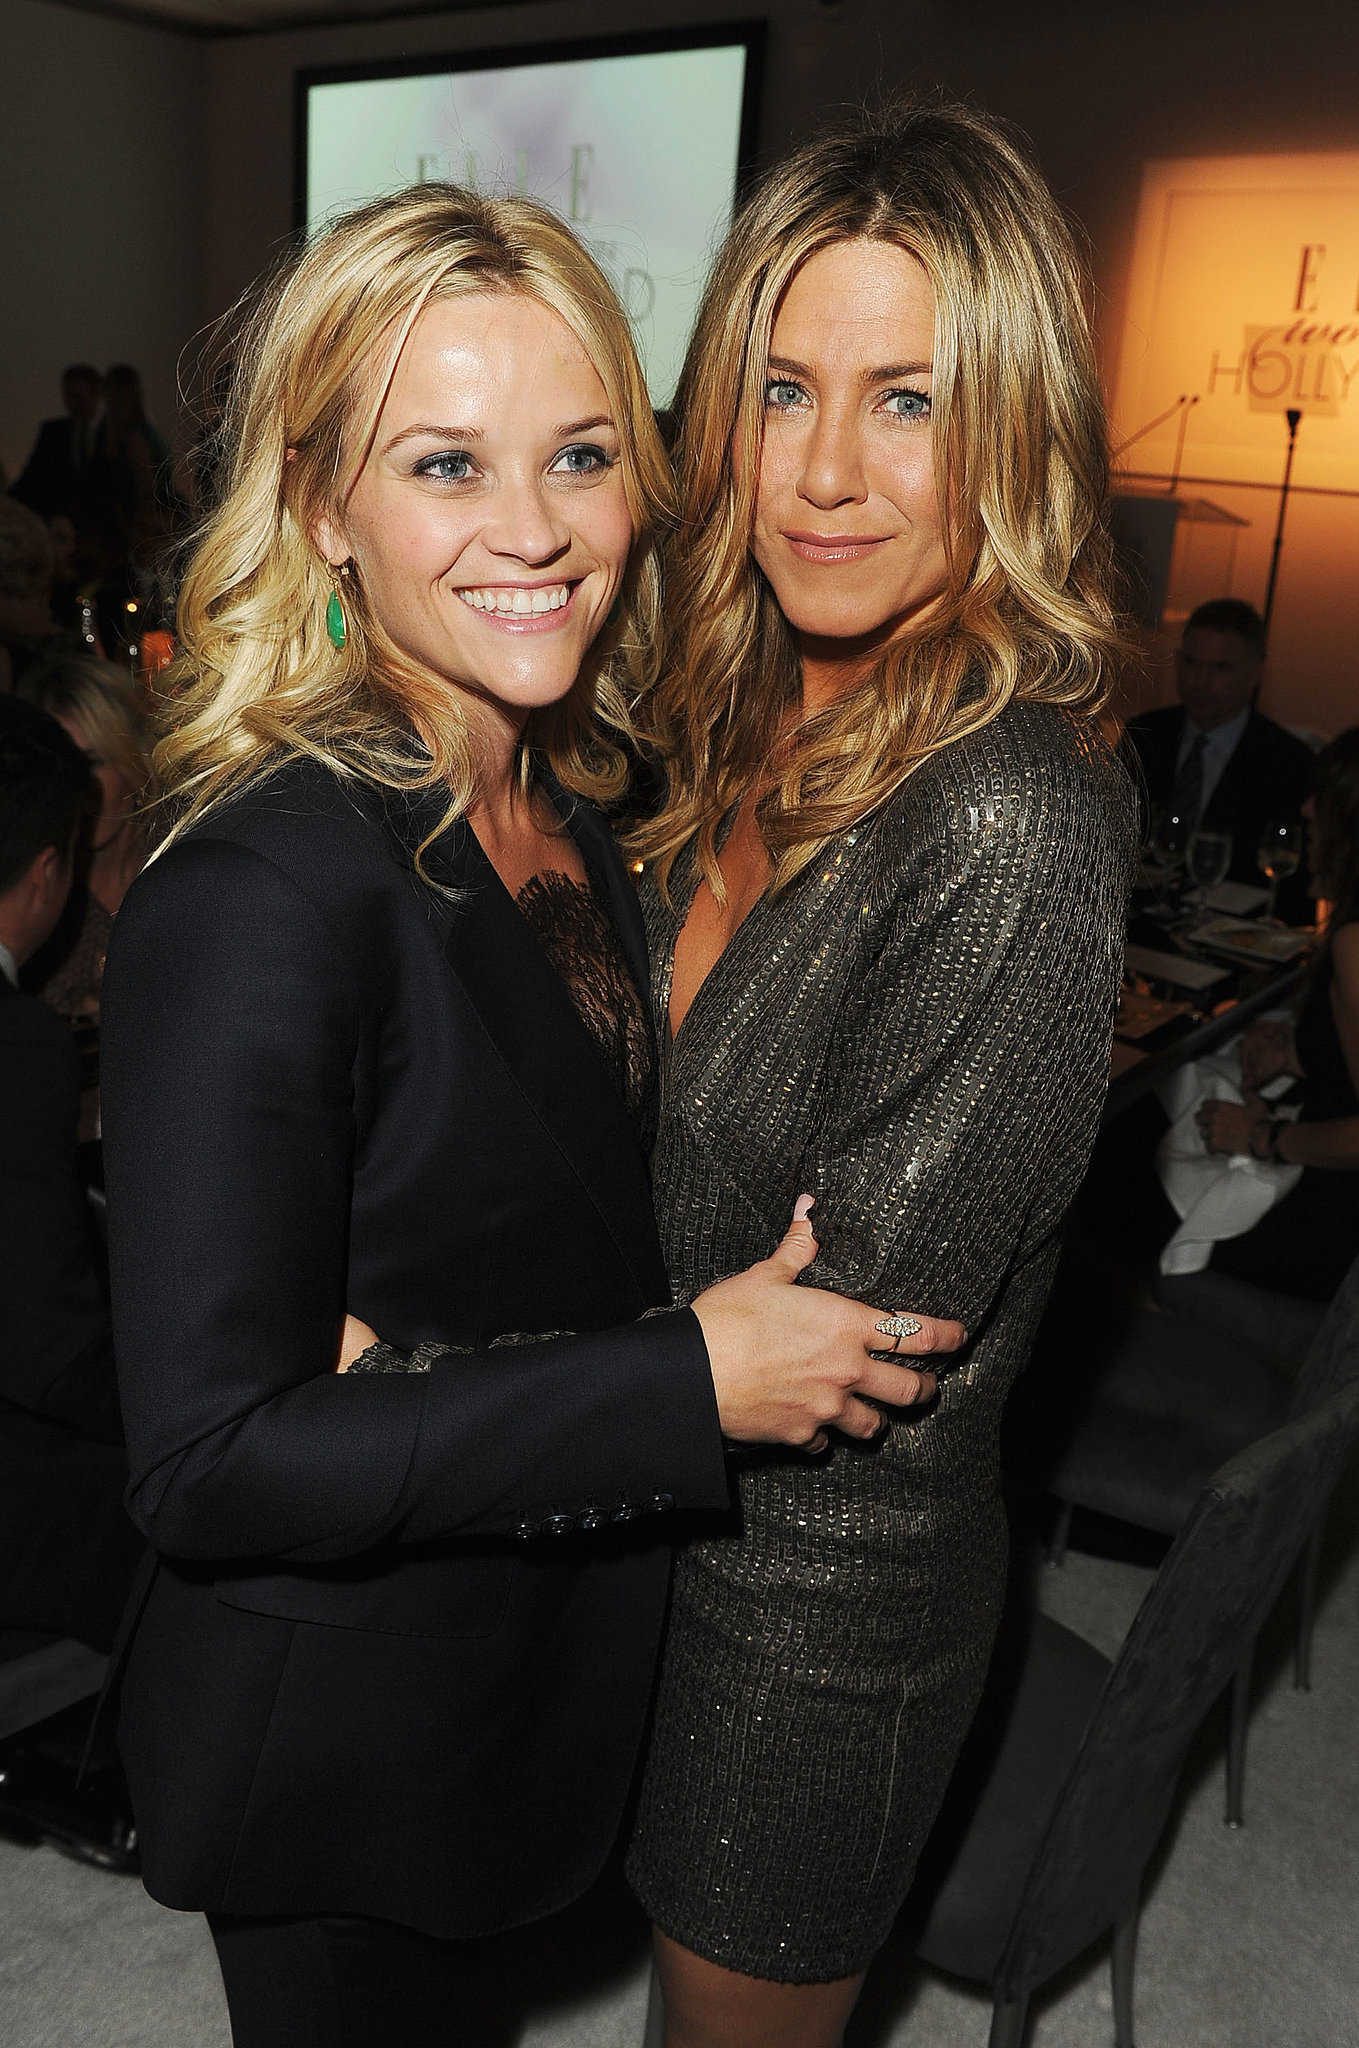 Reese was reunited with pal Jennifer Aniston at the Elle Women in Hollywood event in October 2011.